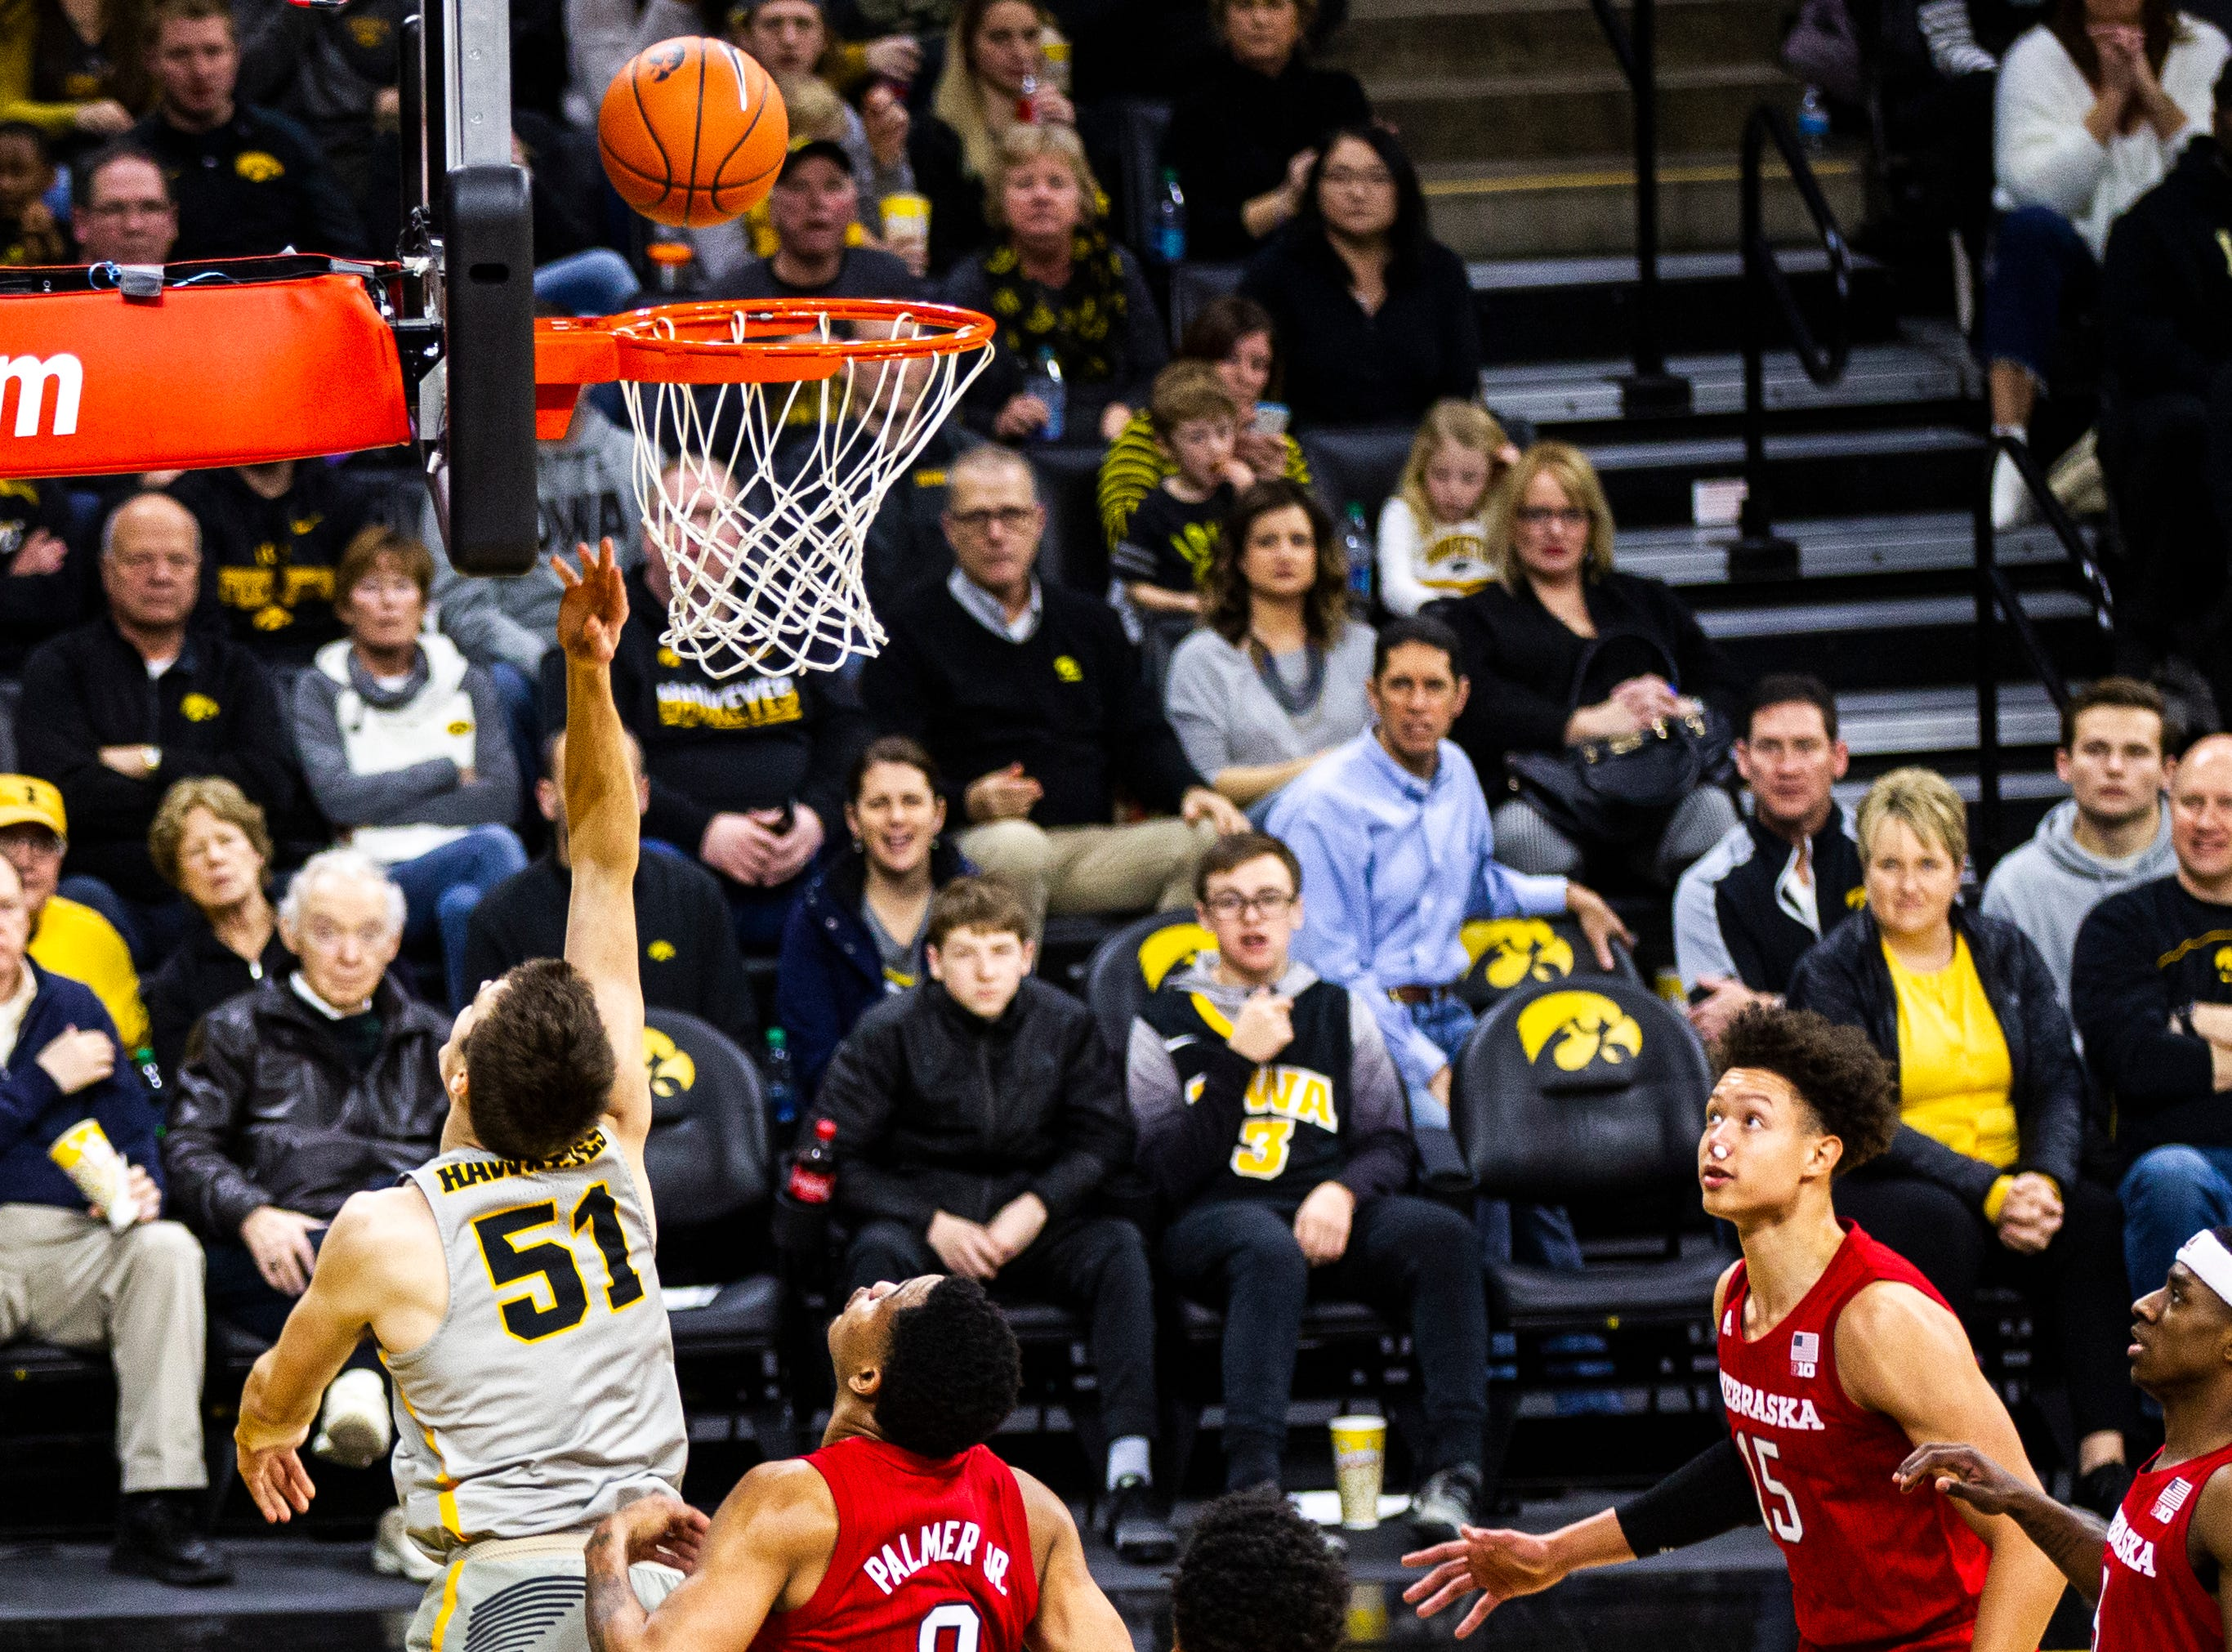 Iowa forward Nicholas Baer (51) attempts a basket during a NCAA Big Ten Conference men's basketball game on Sunday, Jan. 6, 2019, at the Carver-Hawkeye Arena in Iowa City, Iowa.